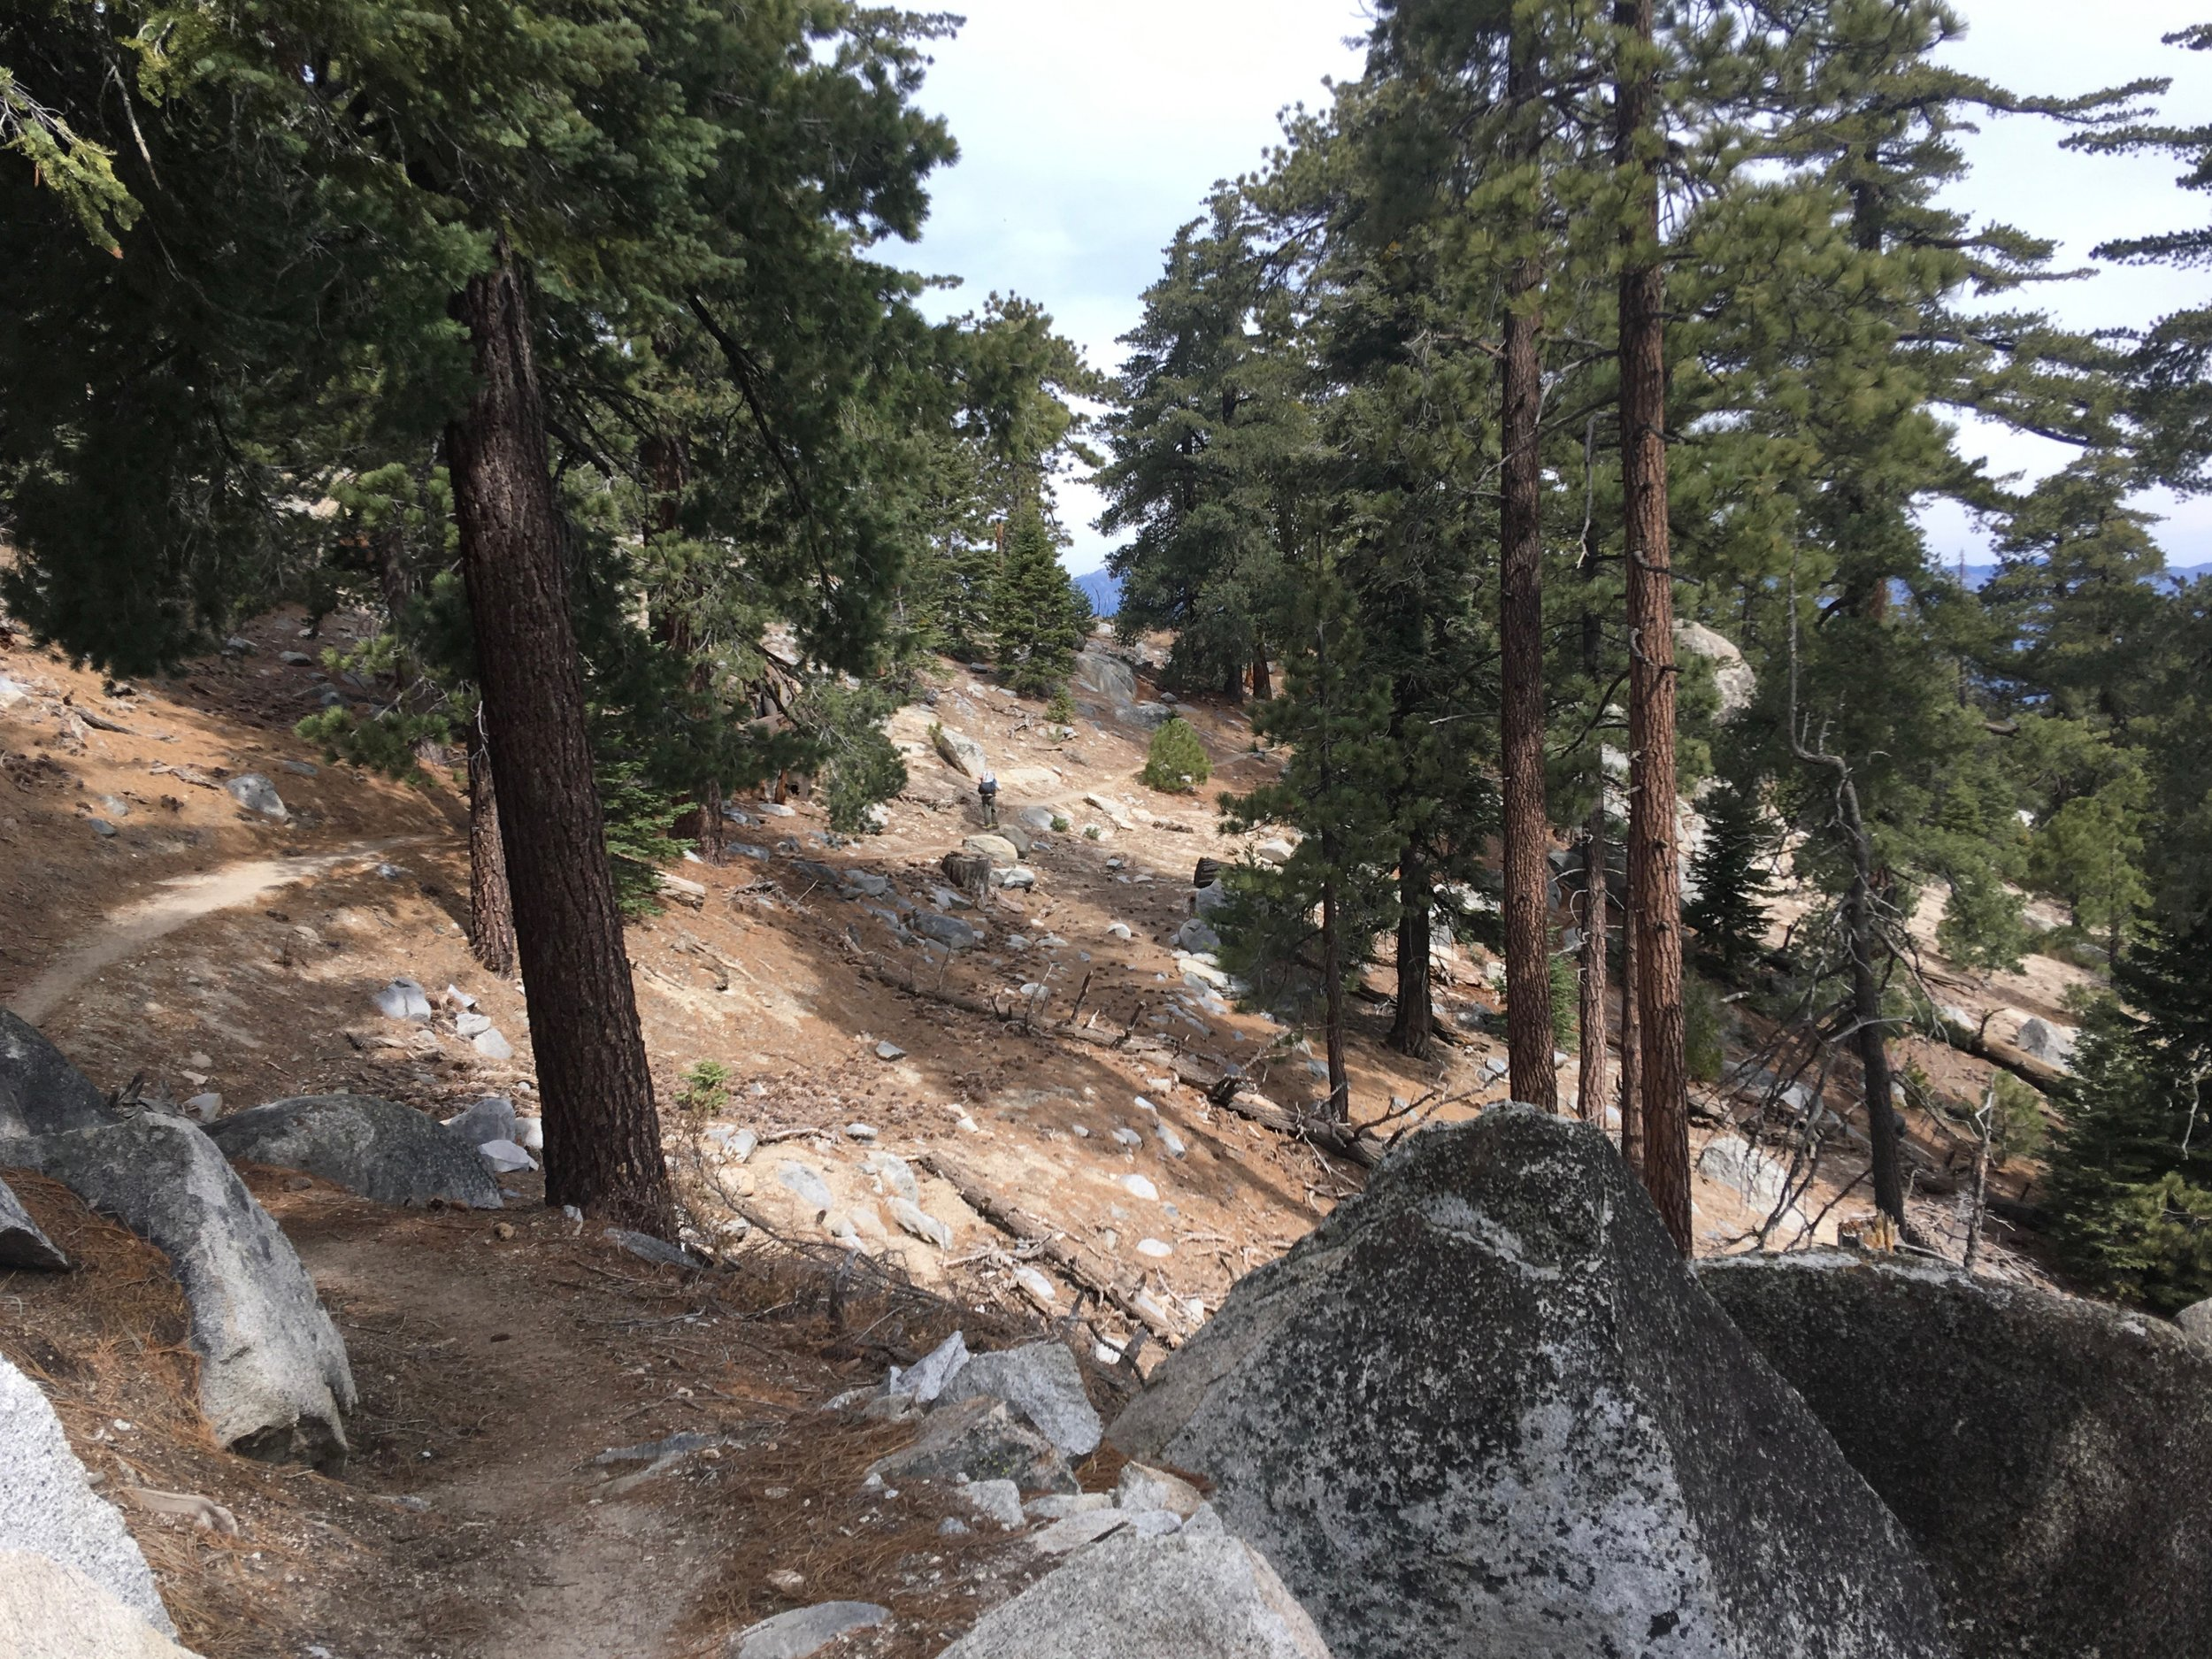 It started off with a gentle decline and a trail covered in pine needles.